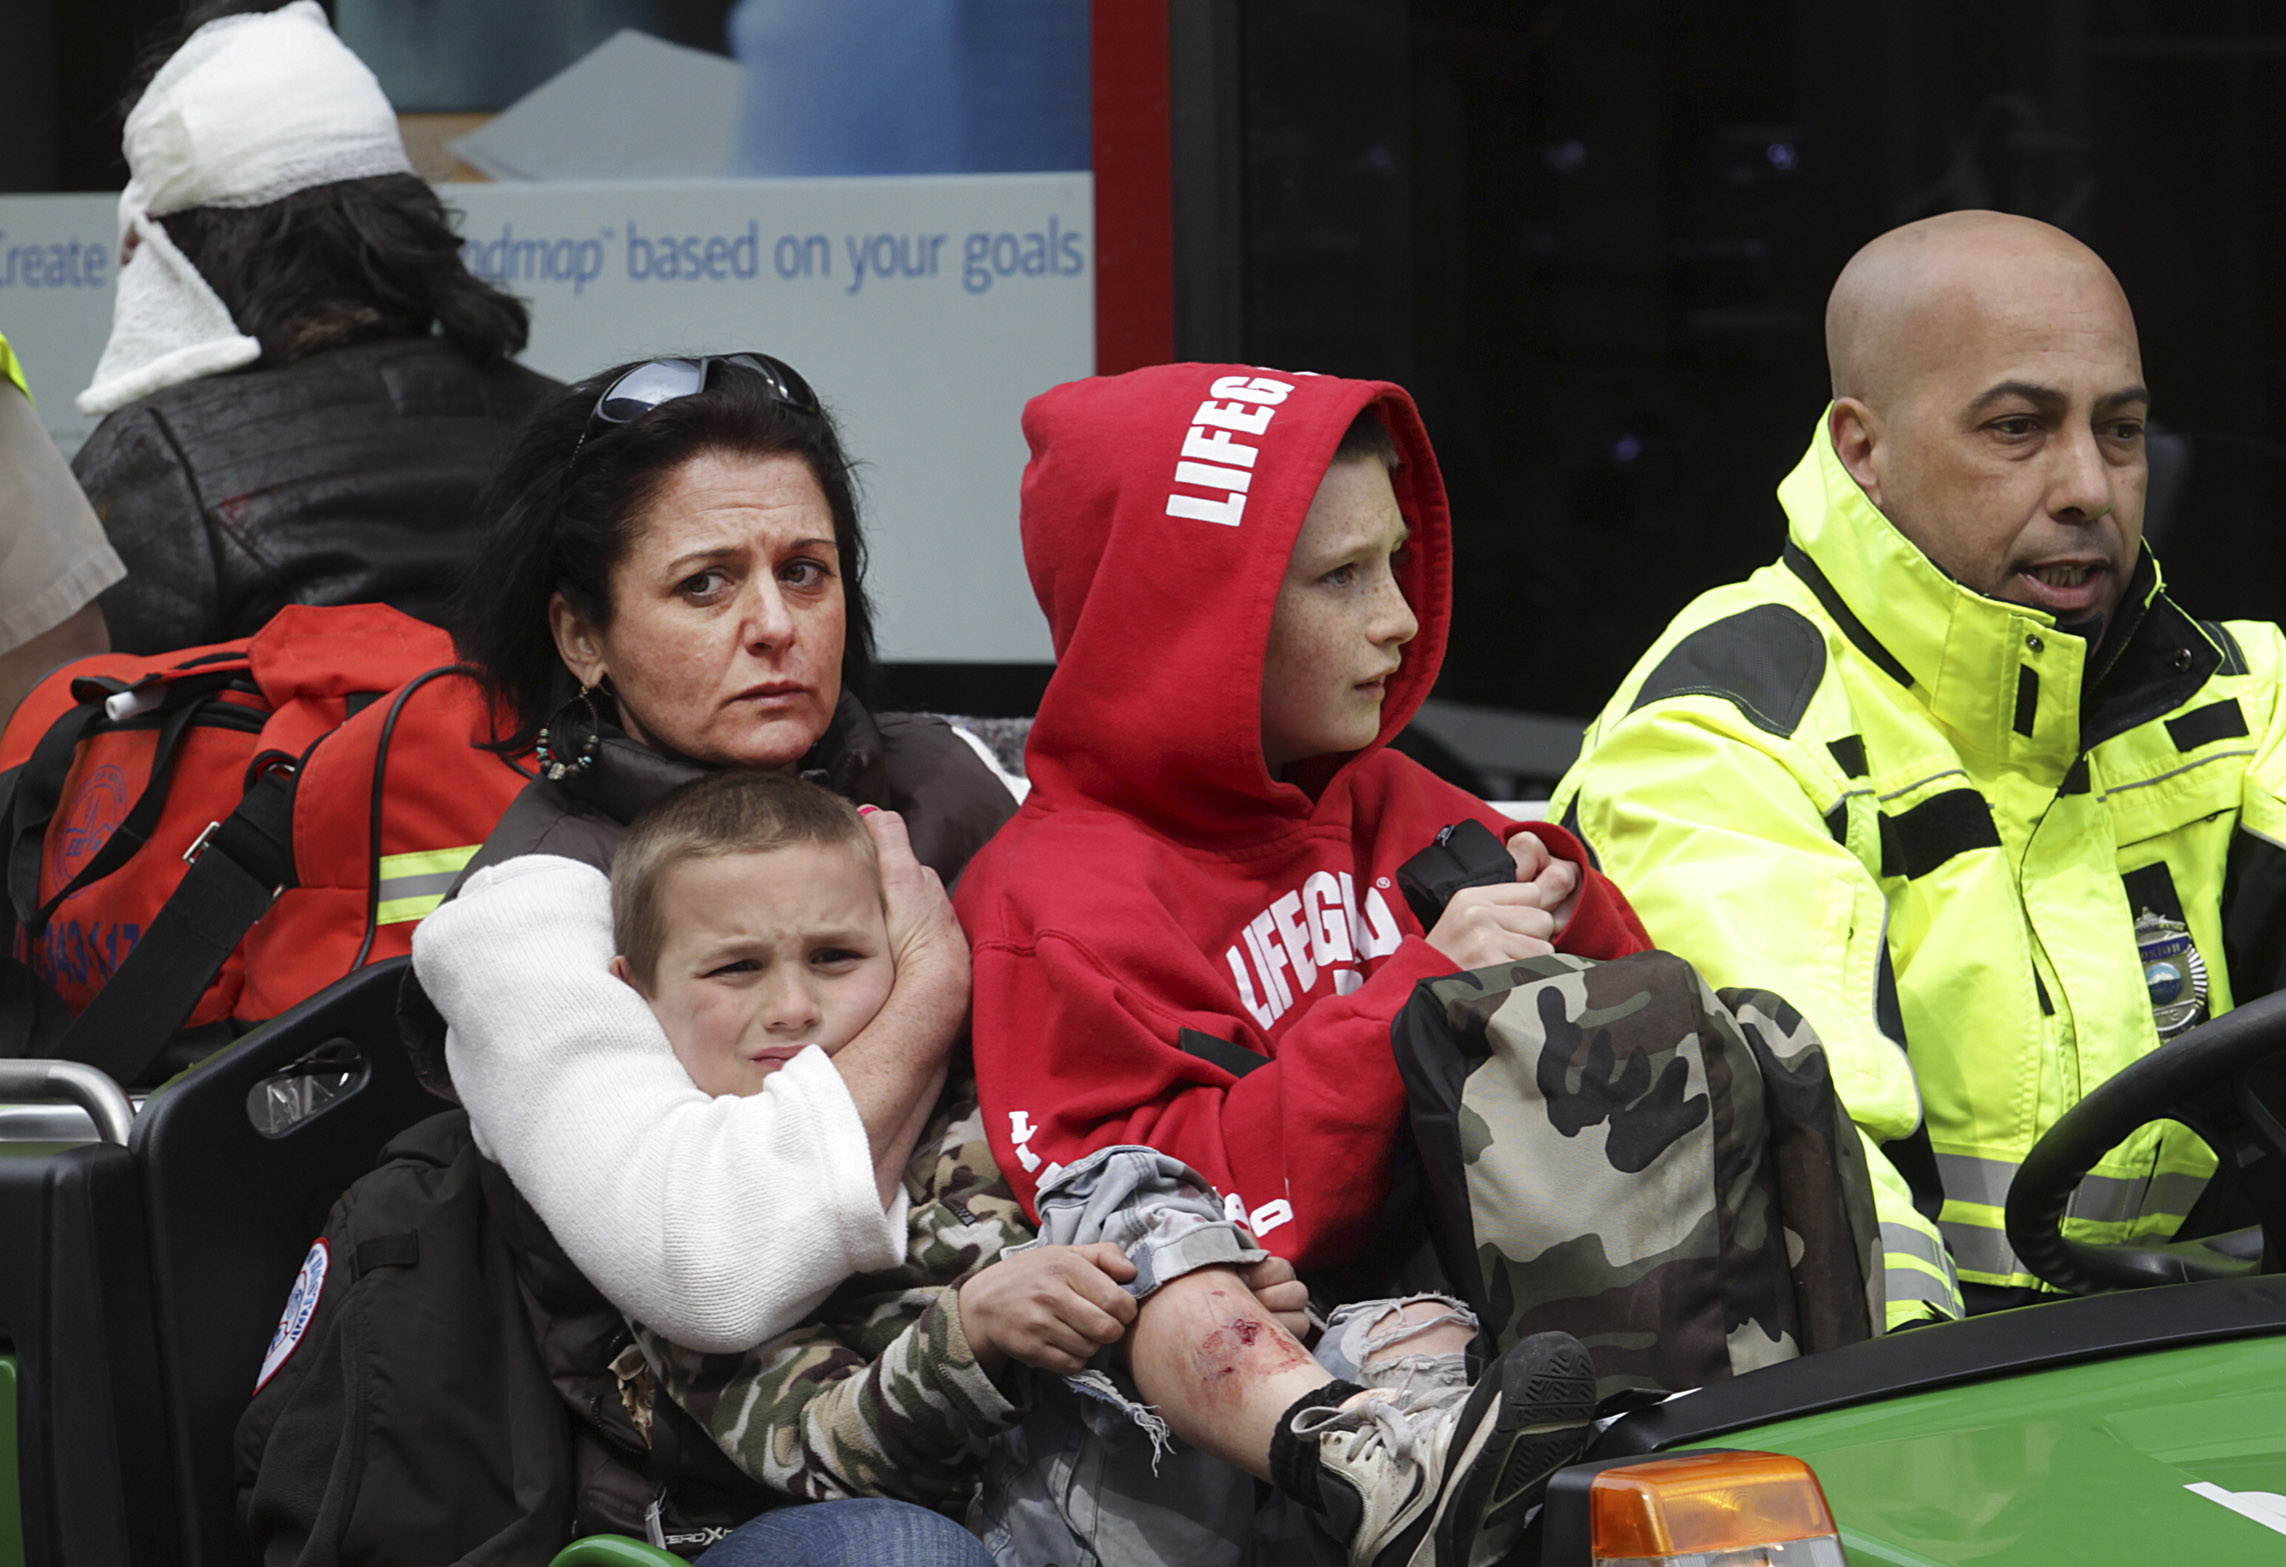 Women and children are evacuated from the scene on Boylston Street after two explosions went off near the finish line of the 117th Boston Marathon on April 15, 2013.